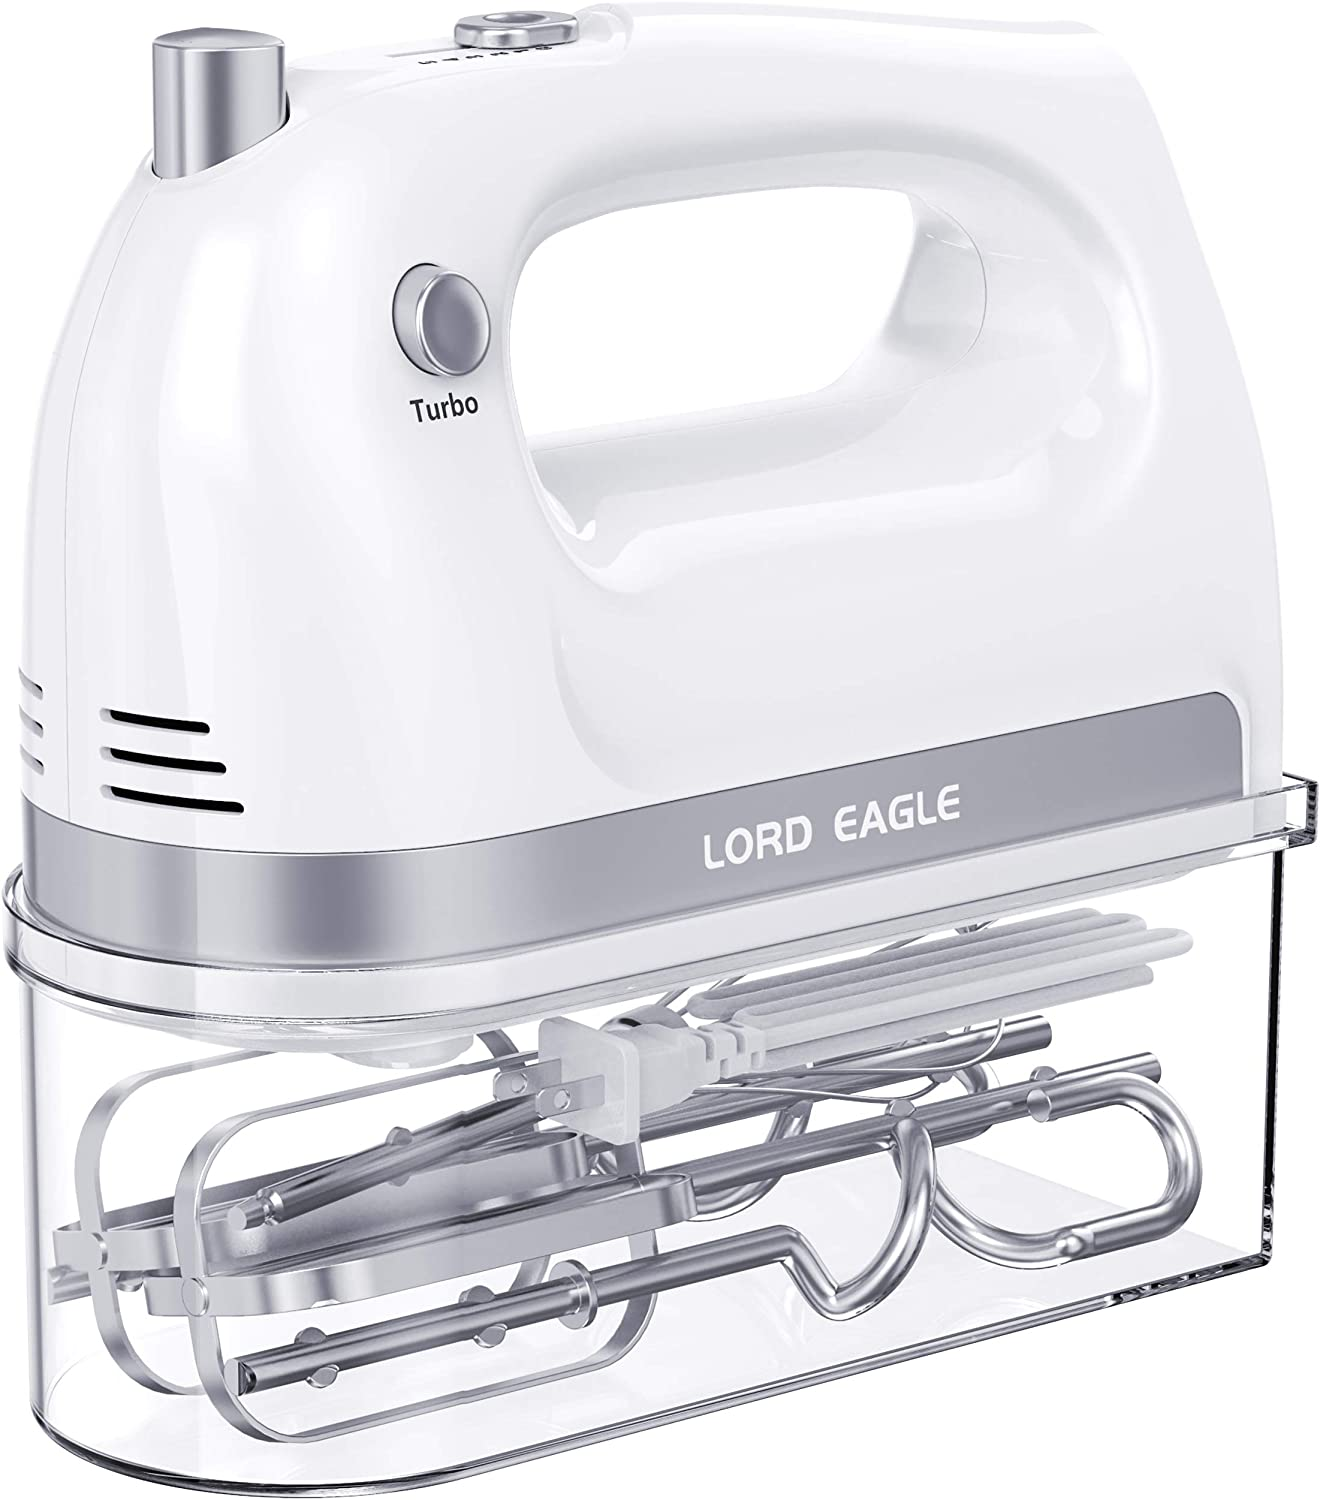 Lord Eagle Hand Mixer Electric, 400W Power handheld Mixer for Baking Cake Egg Cream Food Beater, Turbo Boost/Self-Control Speed + 5 Speed + Eject Button + 5 Stainless Steel Accessories (With Box)